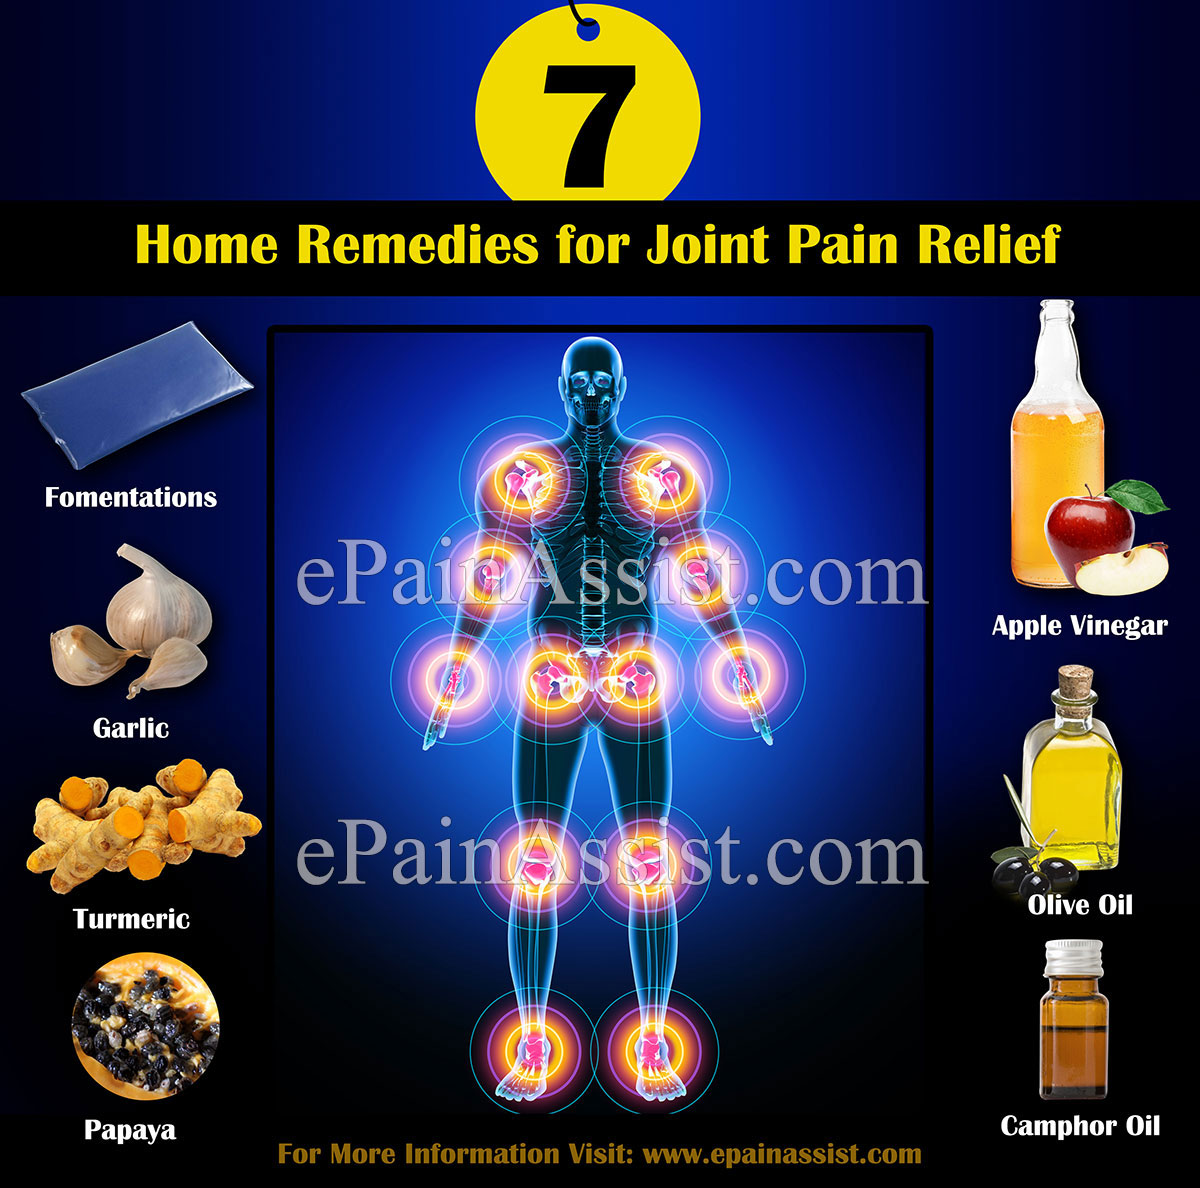 understanding joint pain and tips to get relief using home remedies